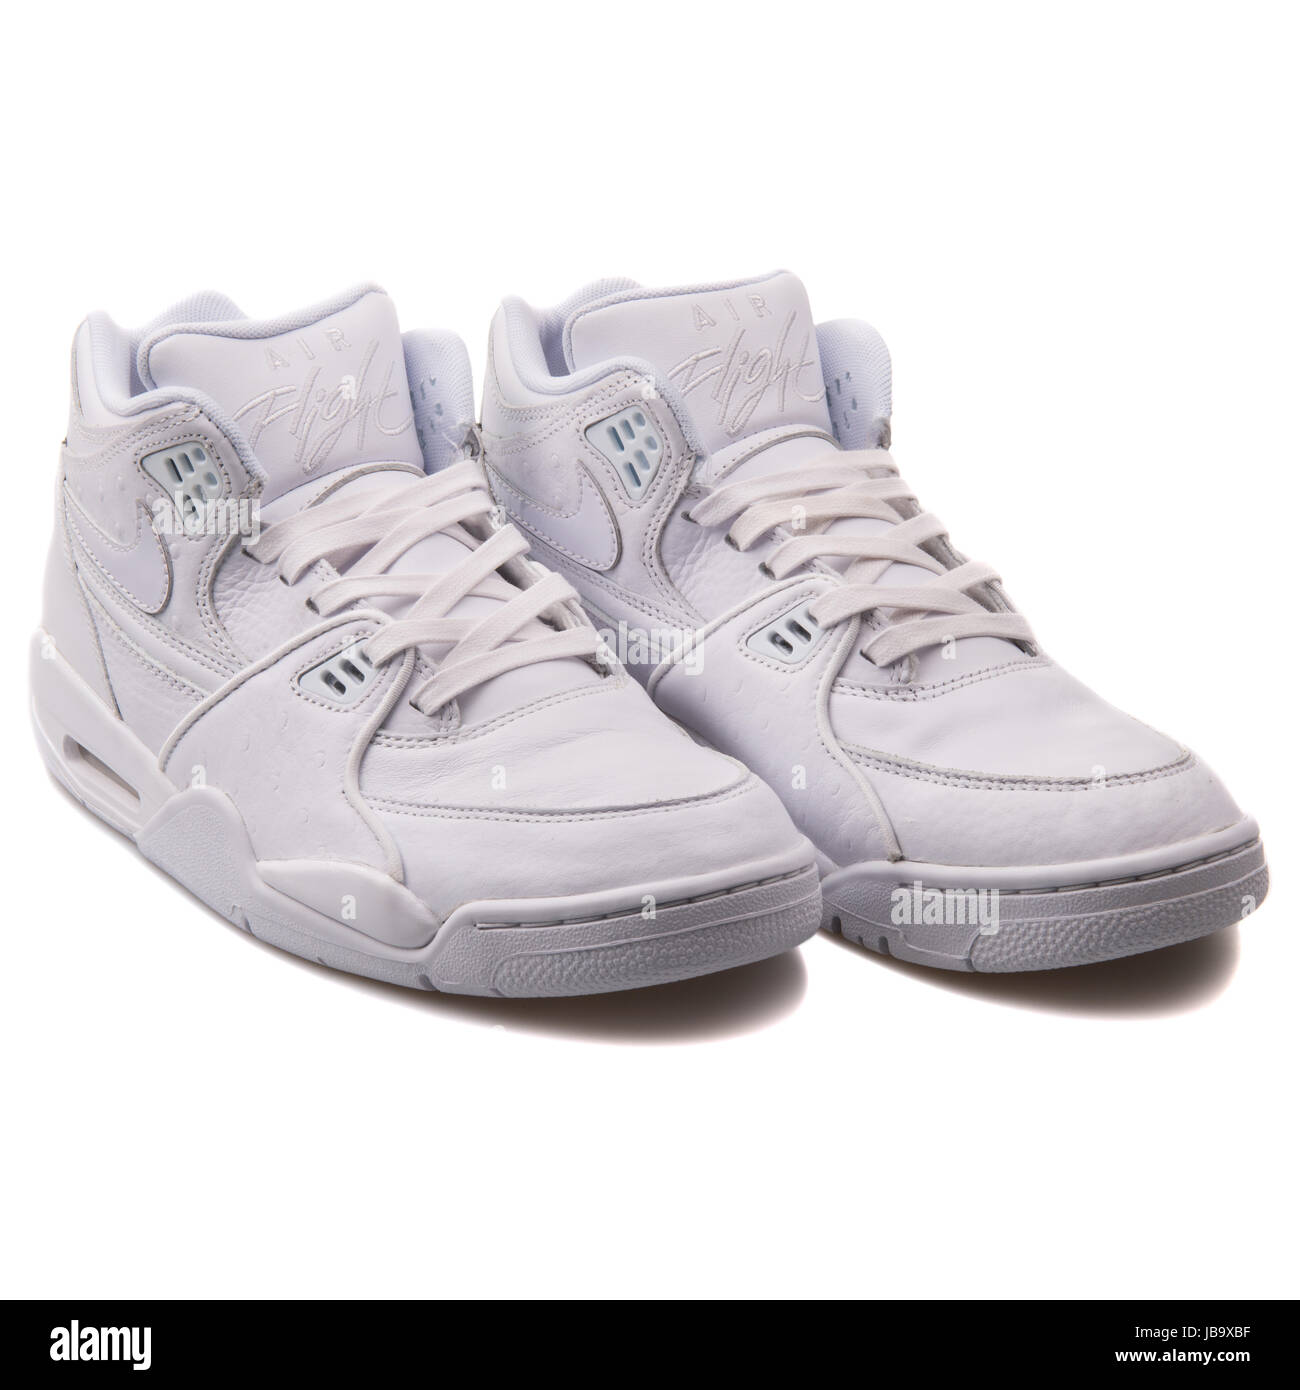 new concept 09cac fd43e Nike Air Flight 89 LE QS White Teal Leather Men s Basketball Shoes -  804605-100